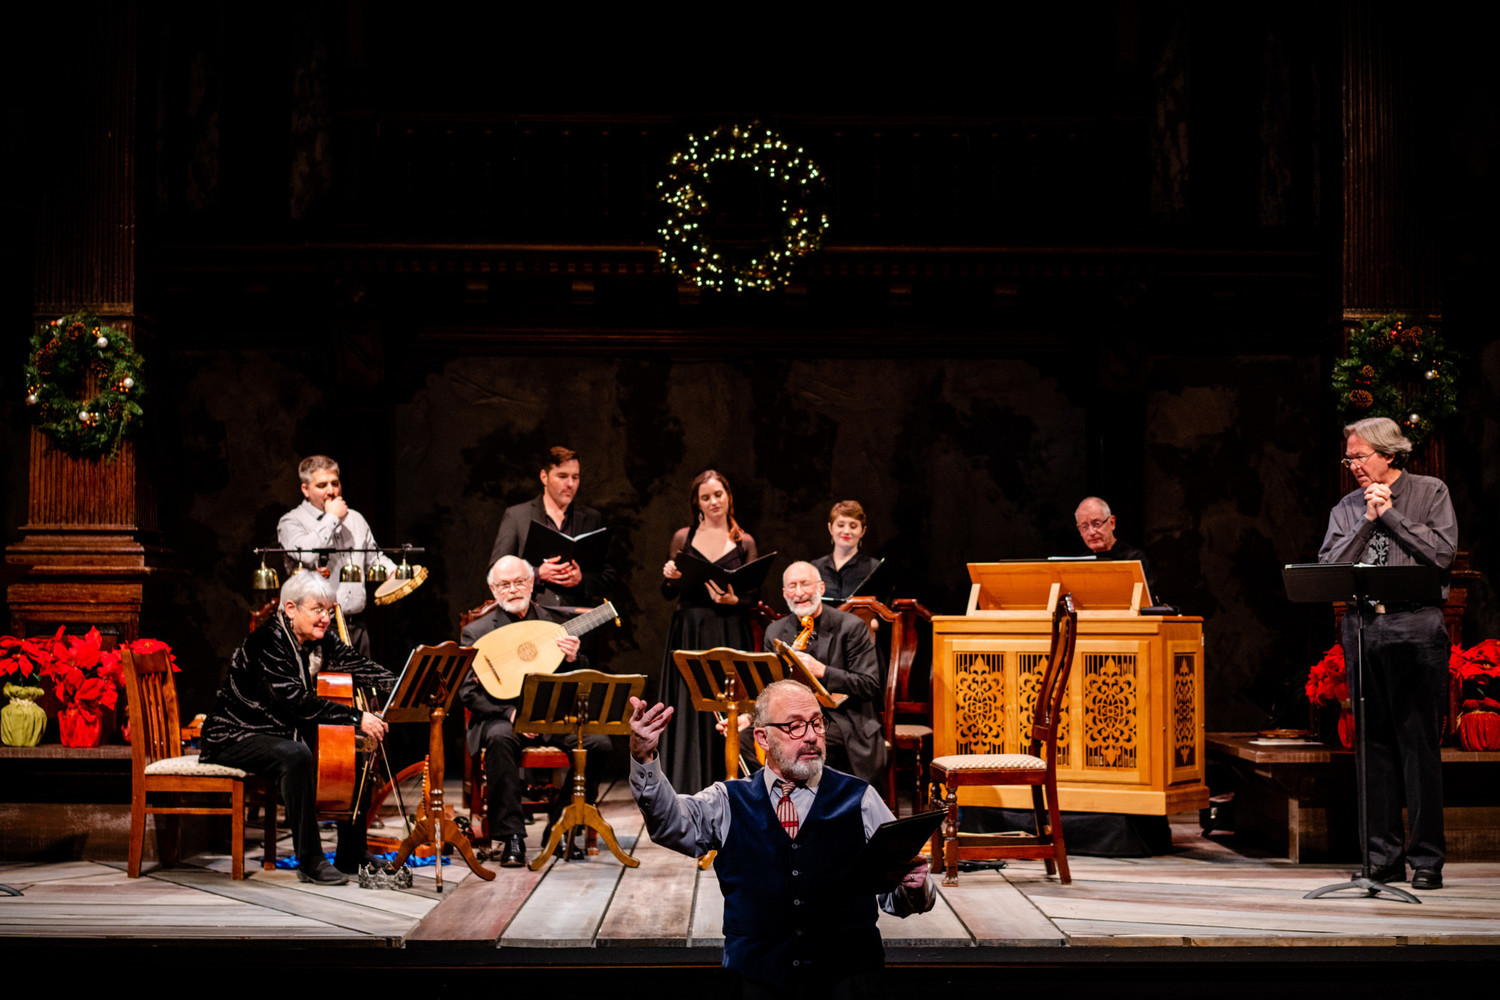 BWW Review: A CHRISTMAS MESSE: A BANQUET OF SEASON ENGLISH MUSIC at Folger Shakespeare Library